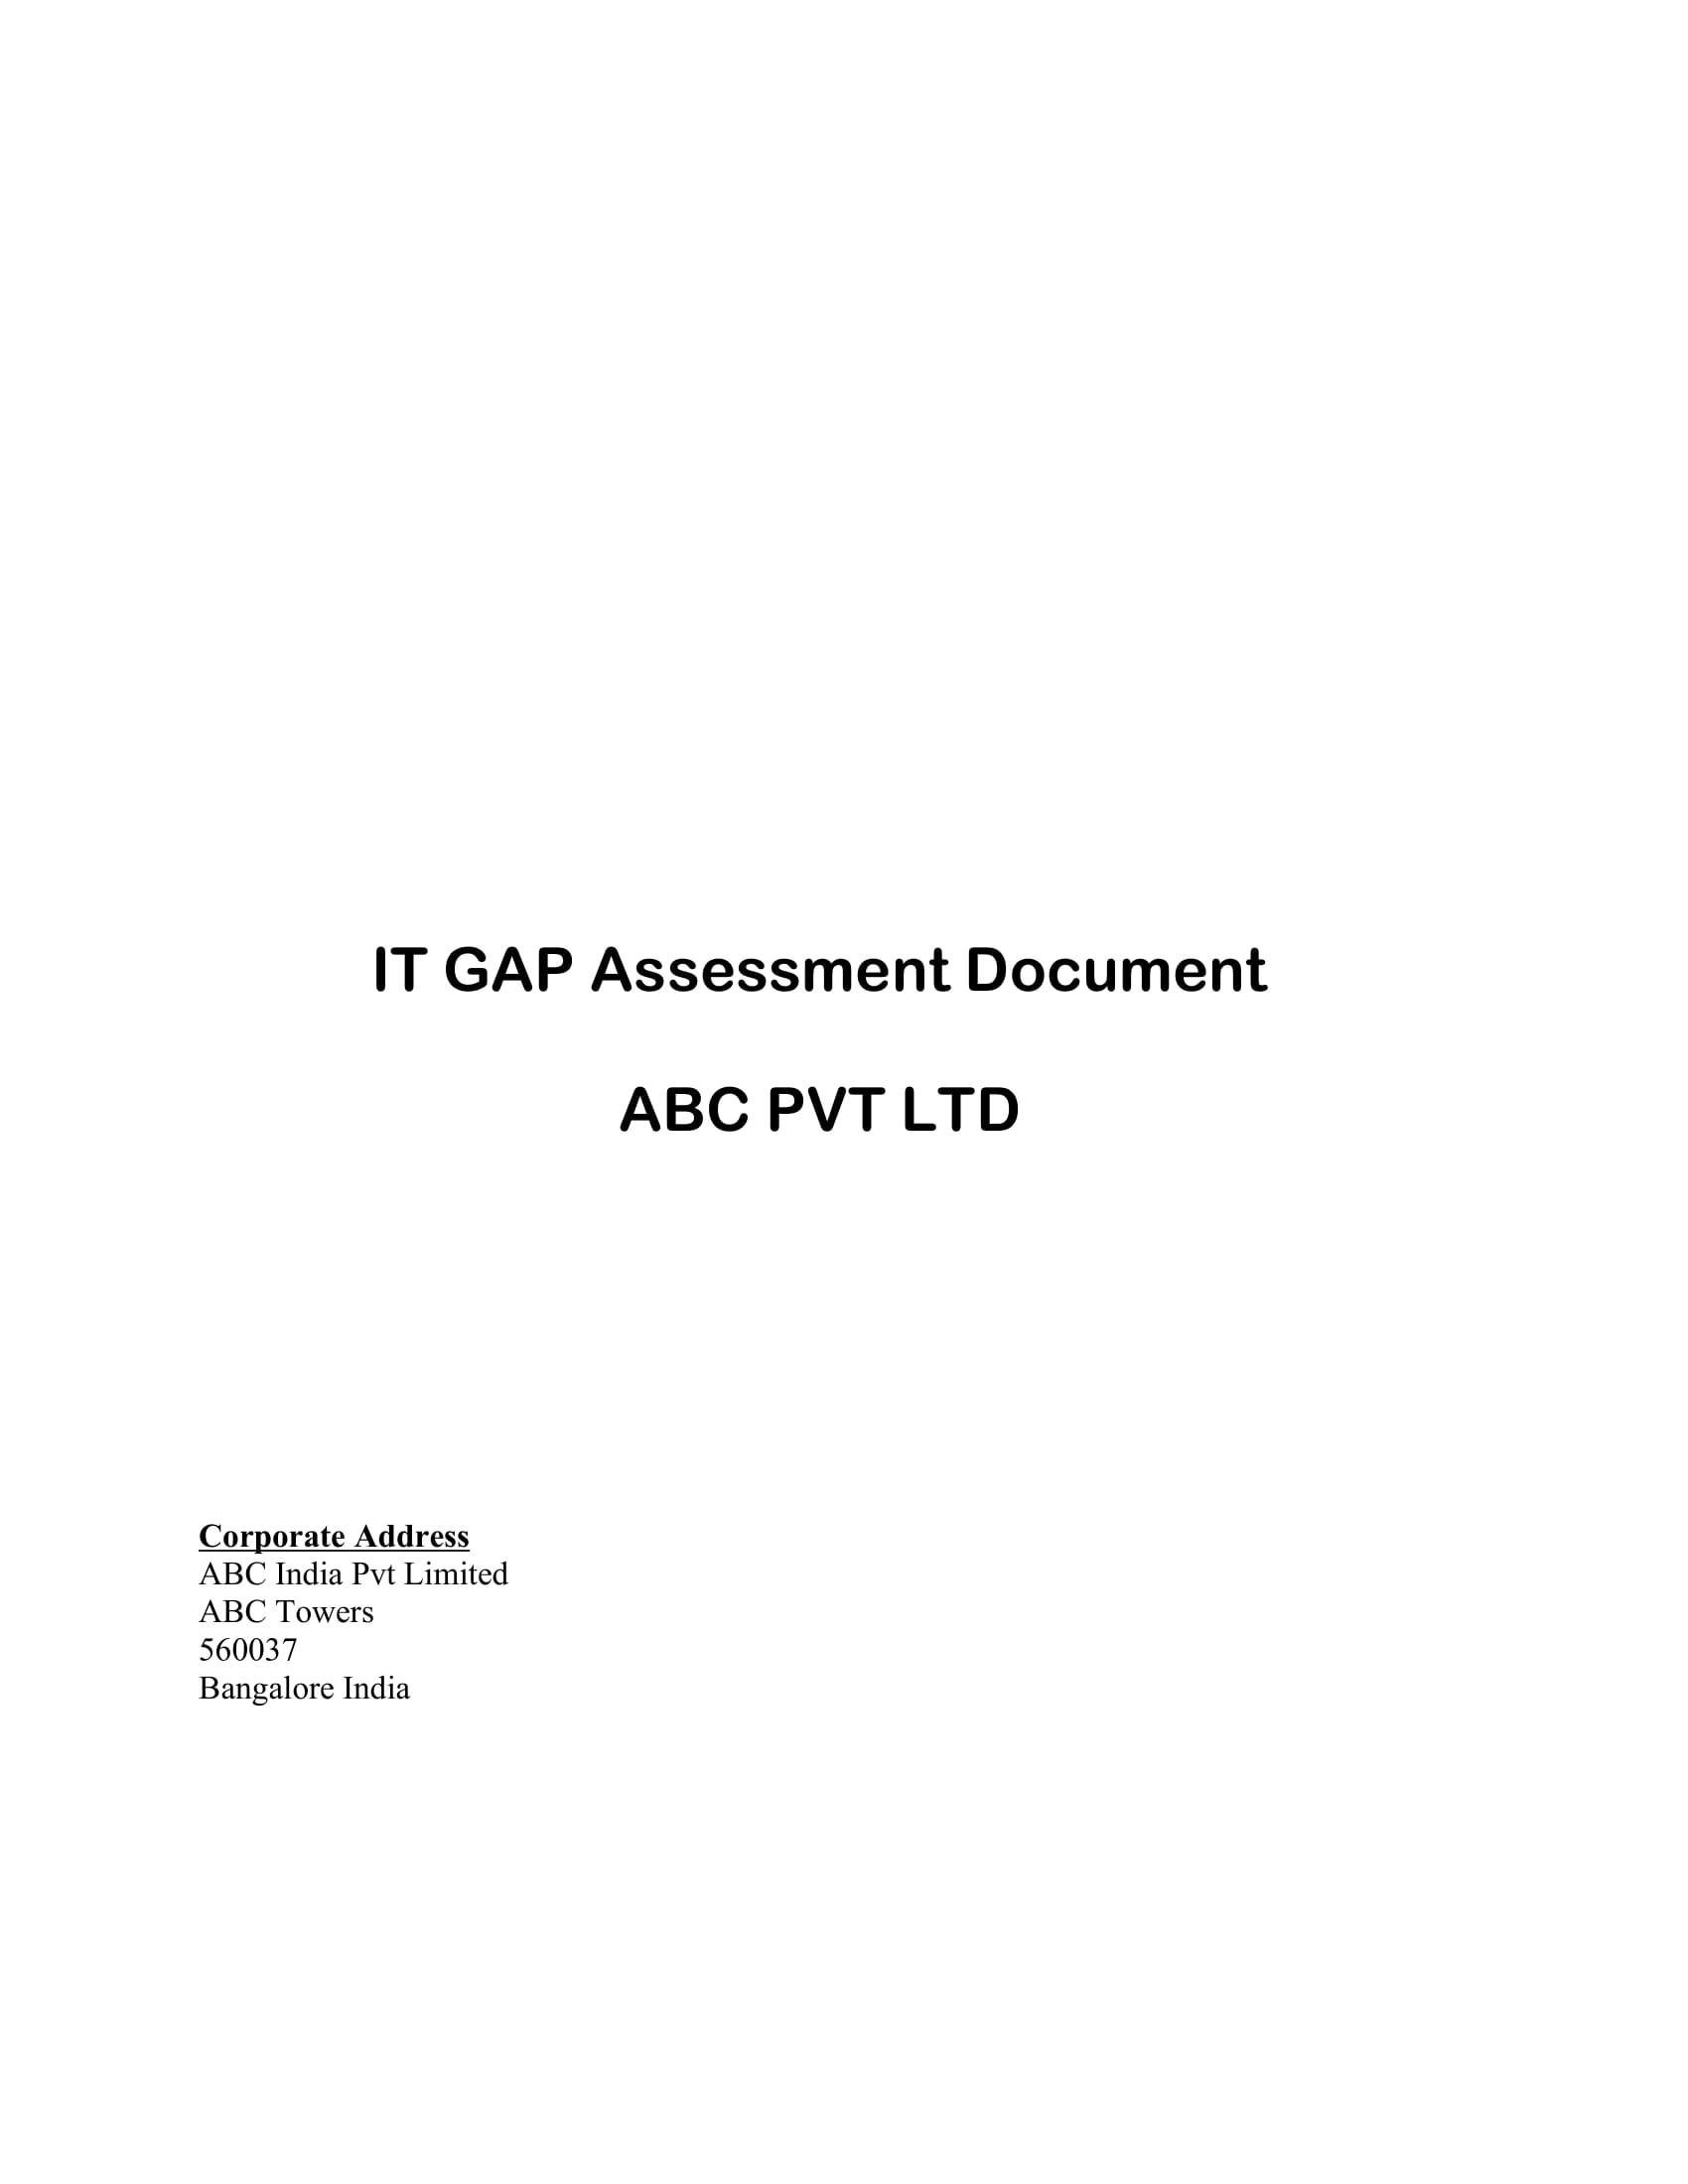 information technology gap assessment or analysis document example 01